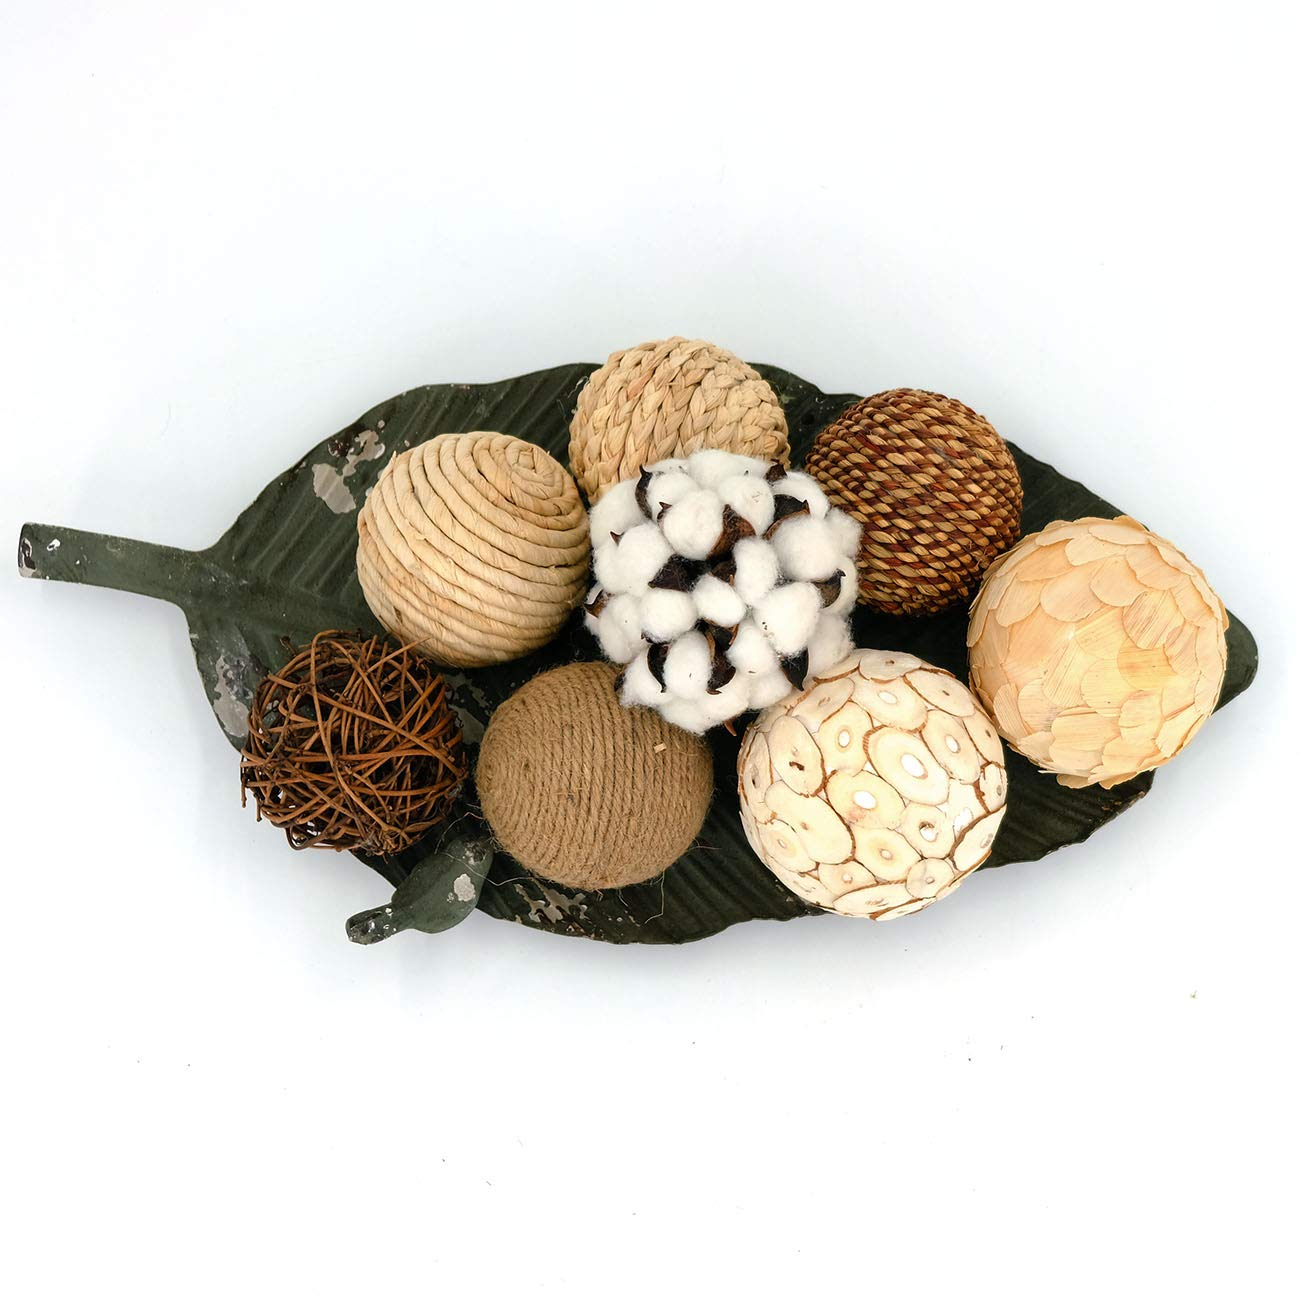 idyllic Decorative Balls for Bowls Natural Wicker 3 Inches Rattan Woven Twig Orbs, String and Cotton Balls Spherical Vase Fillers for Centerpieces - Bag of 8 Brown and White by idyllic